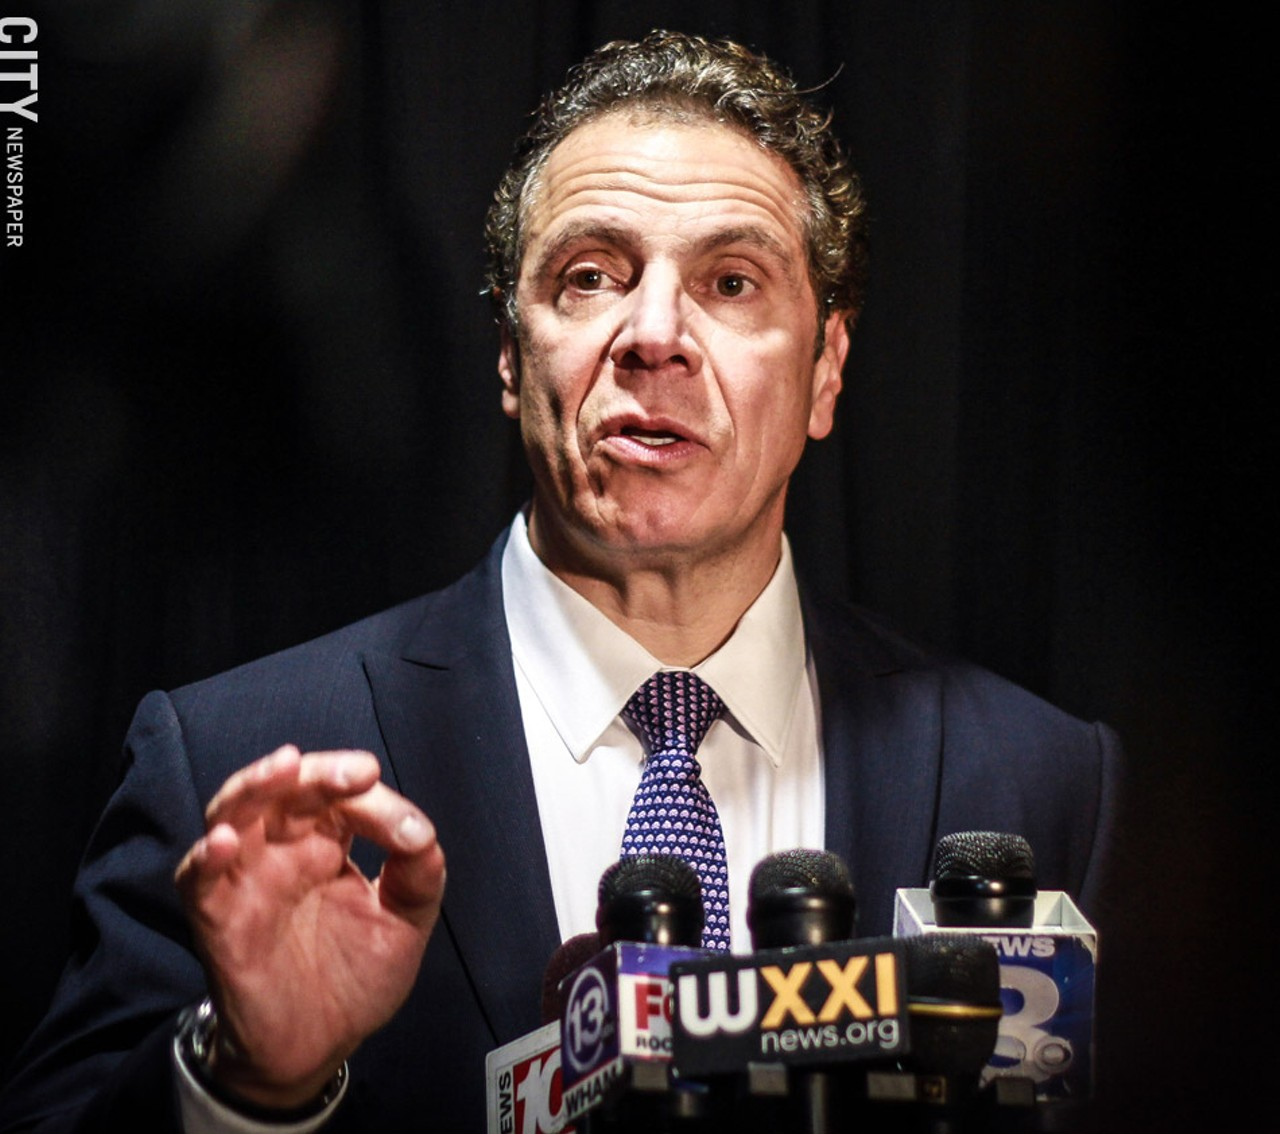 Cuomo proposes study on legalizing marijuana in $168B budget plan